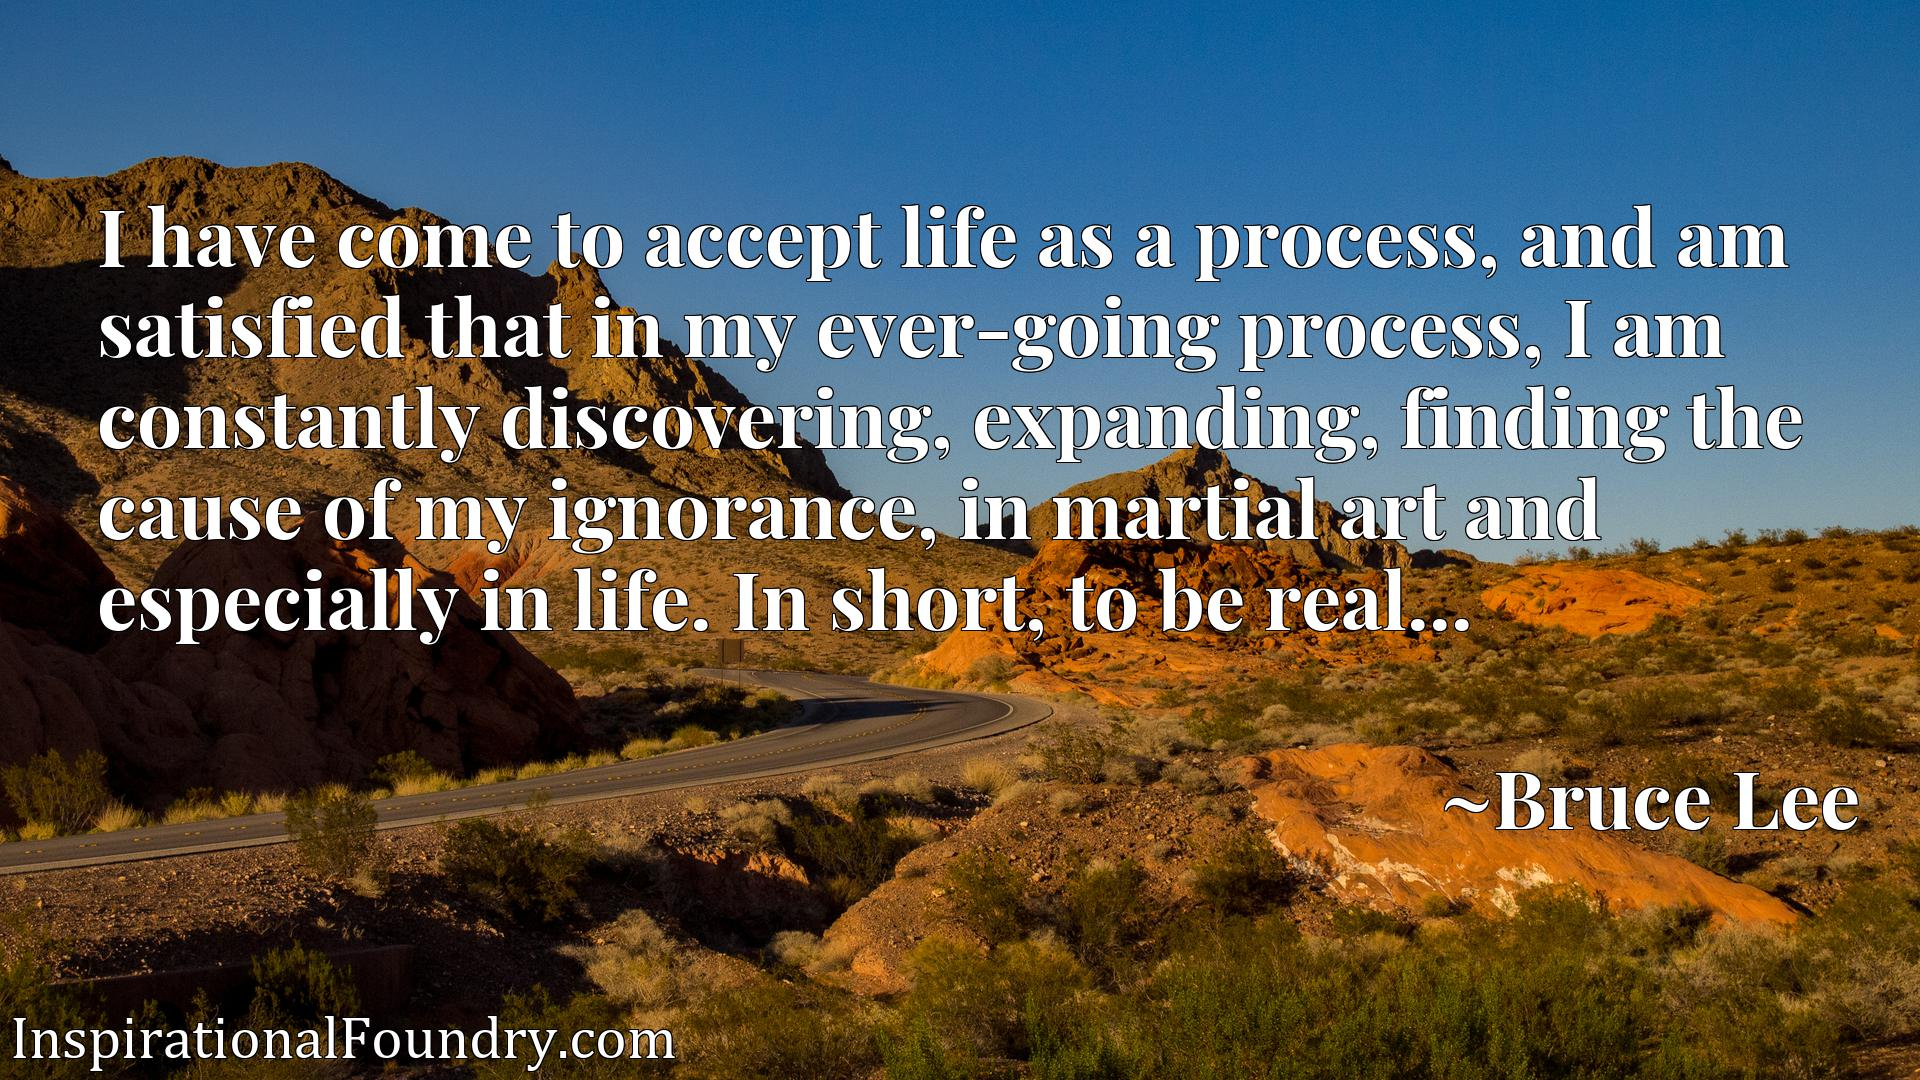 I have come to accept life as a process, and am satisfied that in my ever-going process, I am constantly discovering, expanding, finding the cause of my ignorance, in martial art and especially in life. In short, to be real...